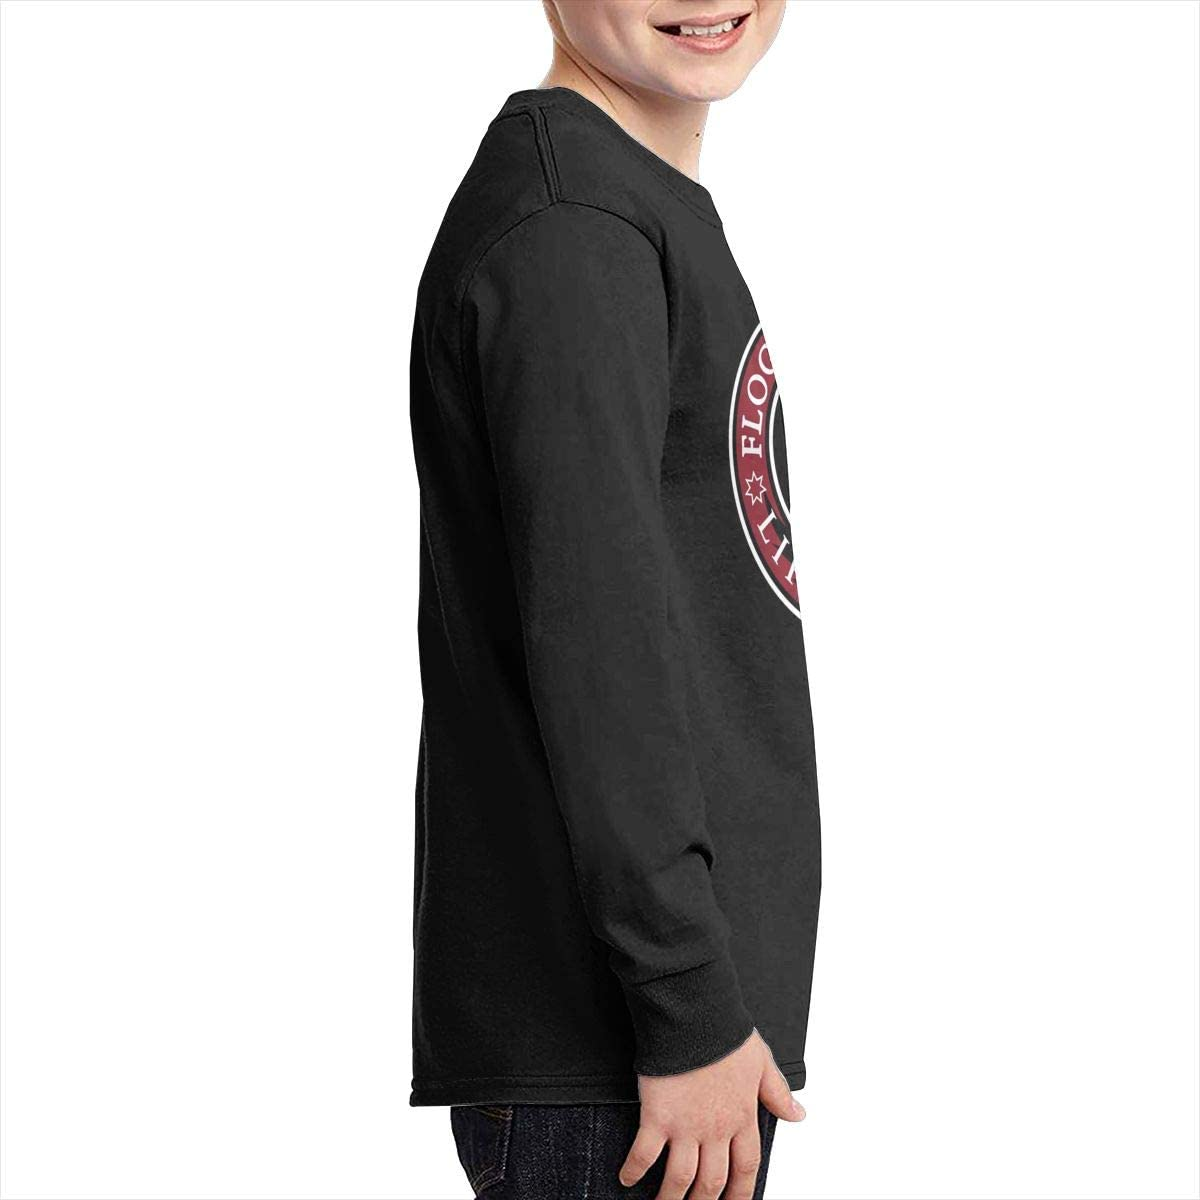 MichaelHazzard Flogging Molly Tour 2019 Youth Casual Long Sleeve Crewneck Tee T-Shirt for Boys and Girls